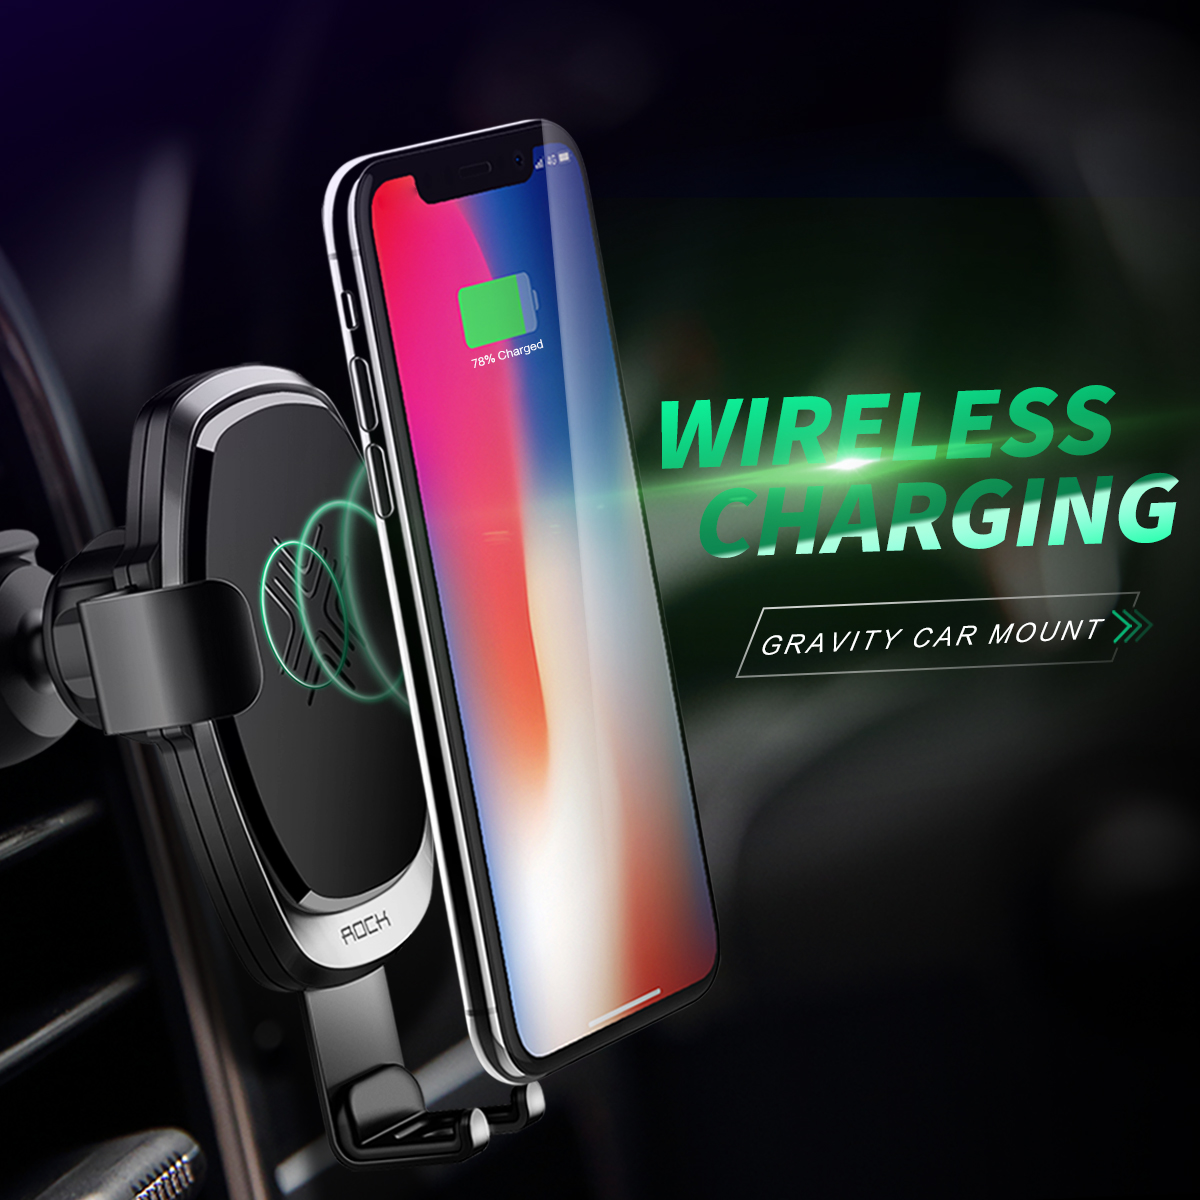 HTB1h4JsKx9YBuNjy0Ffq6xIsVXaL - 10W QI Wireless Car Charger Gravity Holder , ROCK for iPhone X 8 Plus Samsung Galaxy S8 S7 Note 8 Quick Charge Charging Stand